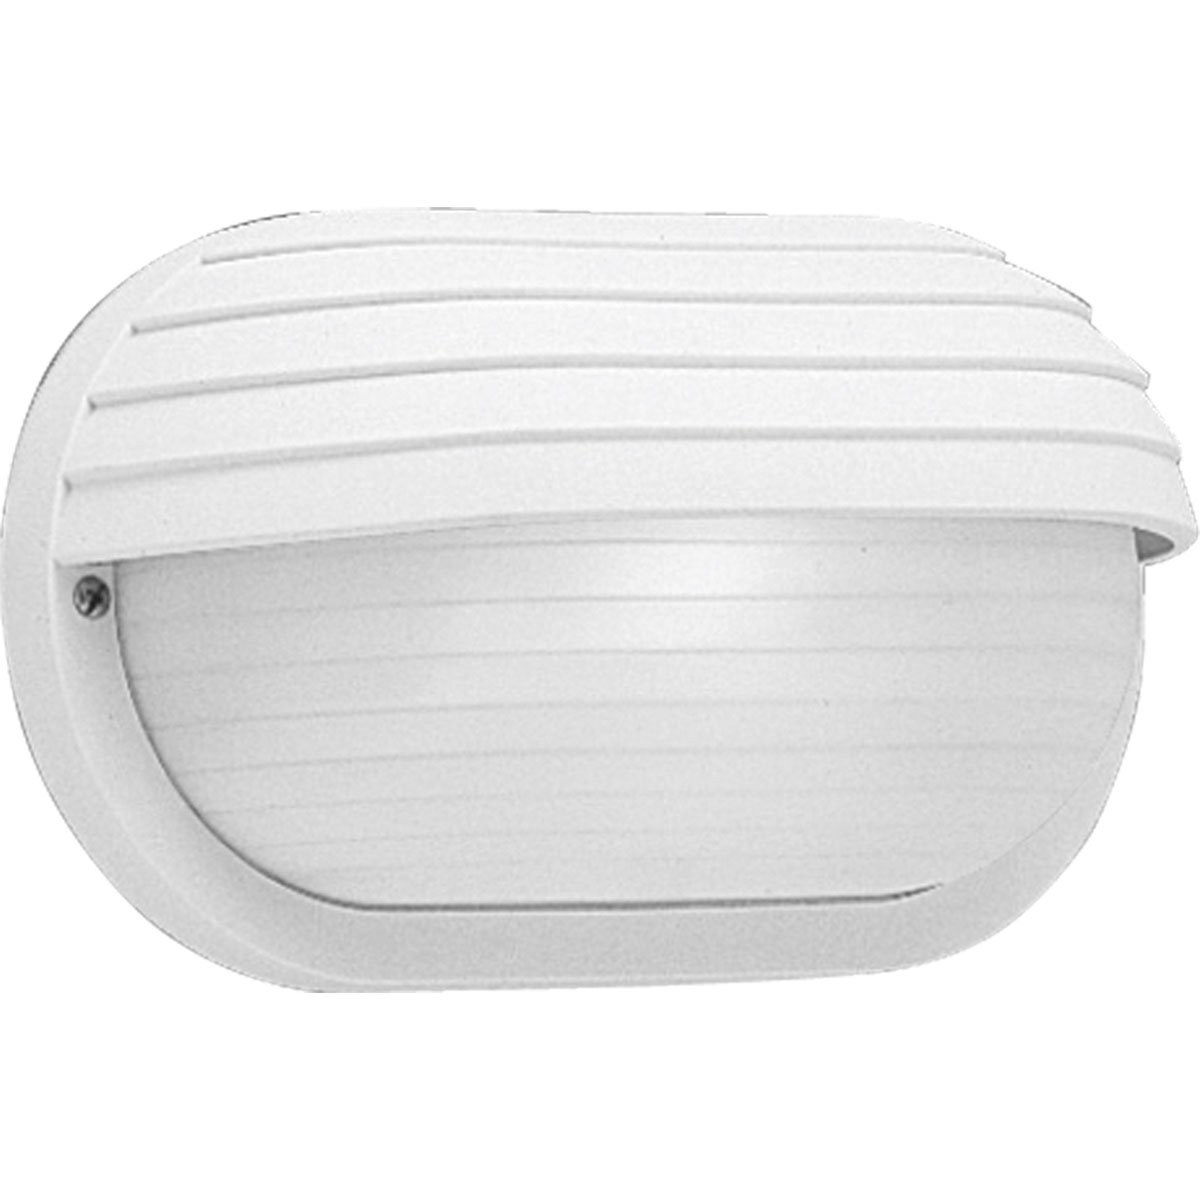 Progress Lighting P5706-30 Polycarbonate Light Mounted On Walls Only Indoors or Outdoors with No Color Fade, White